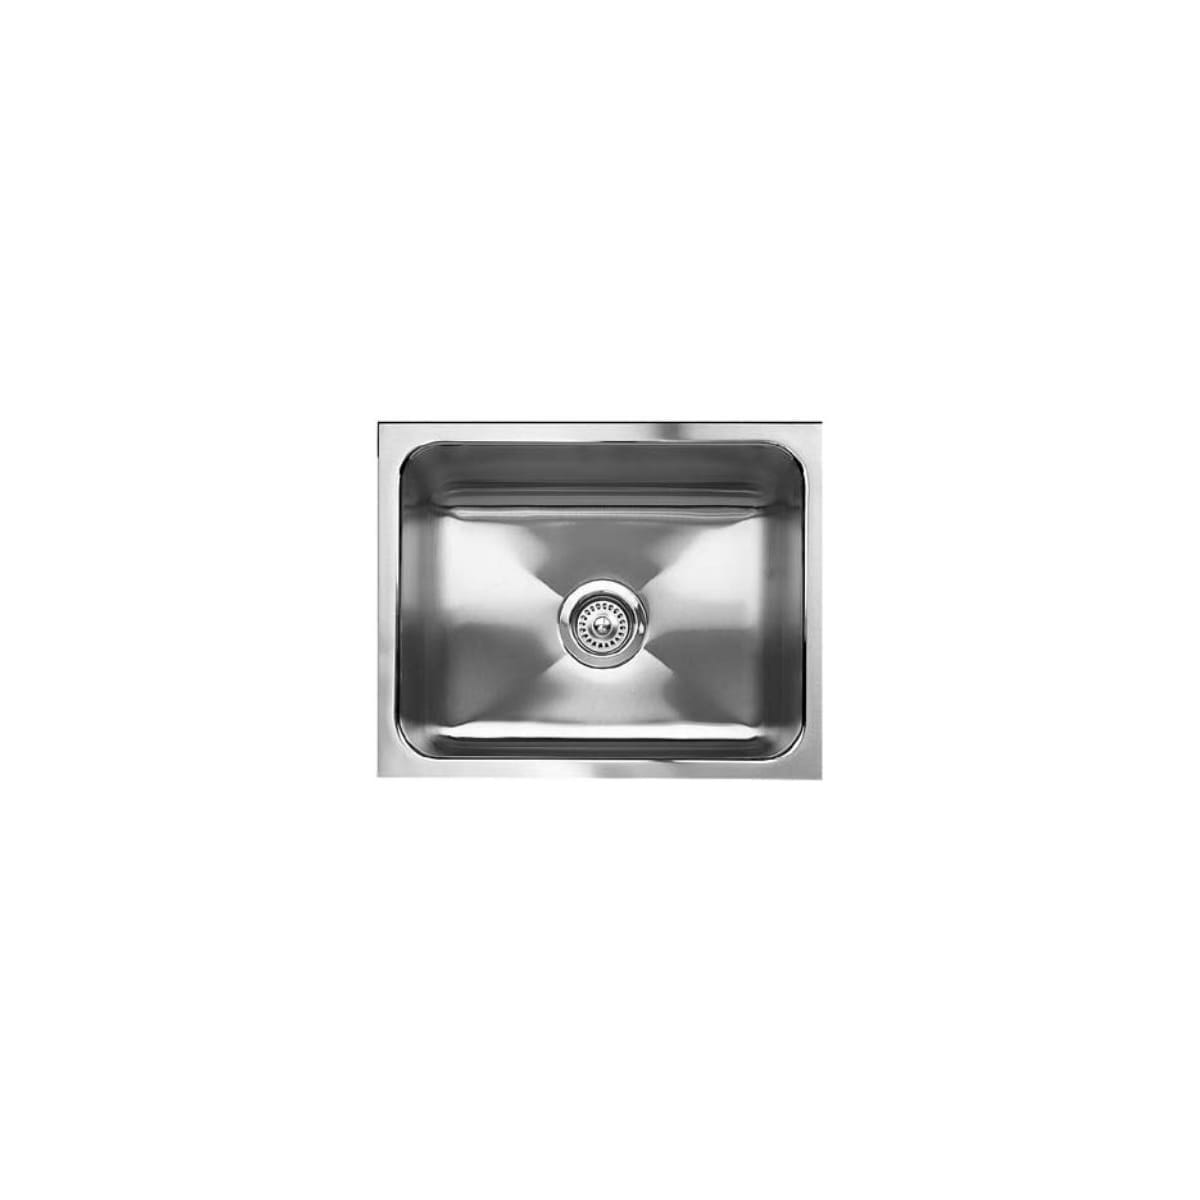 "Blanco Magnum 21"" Undermount Single Basin Stainless Steel Kitchen Sink"